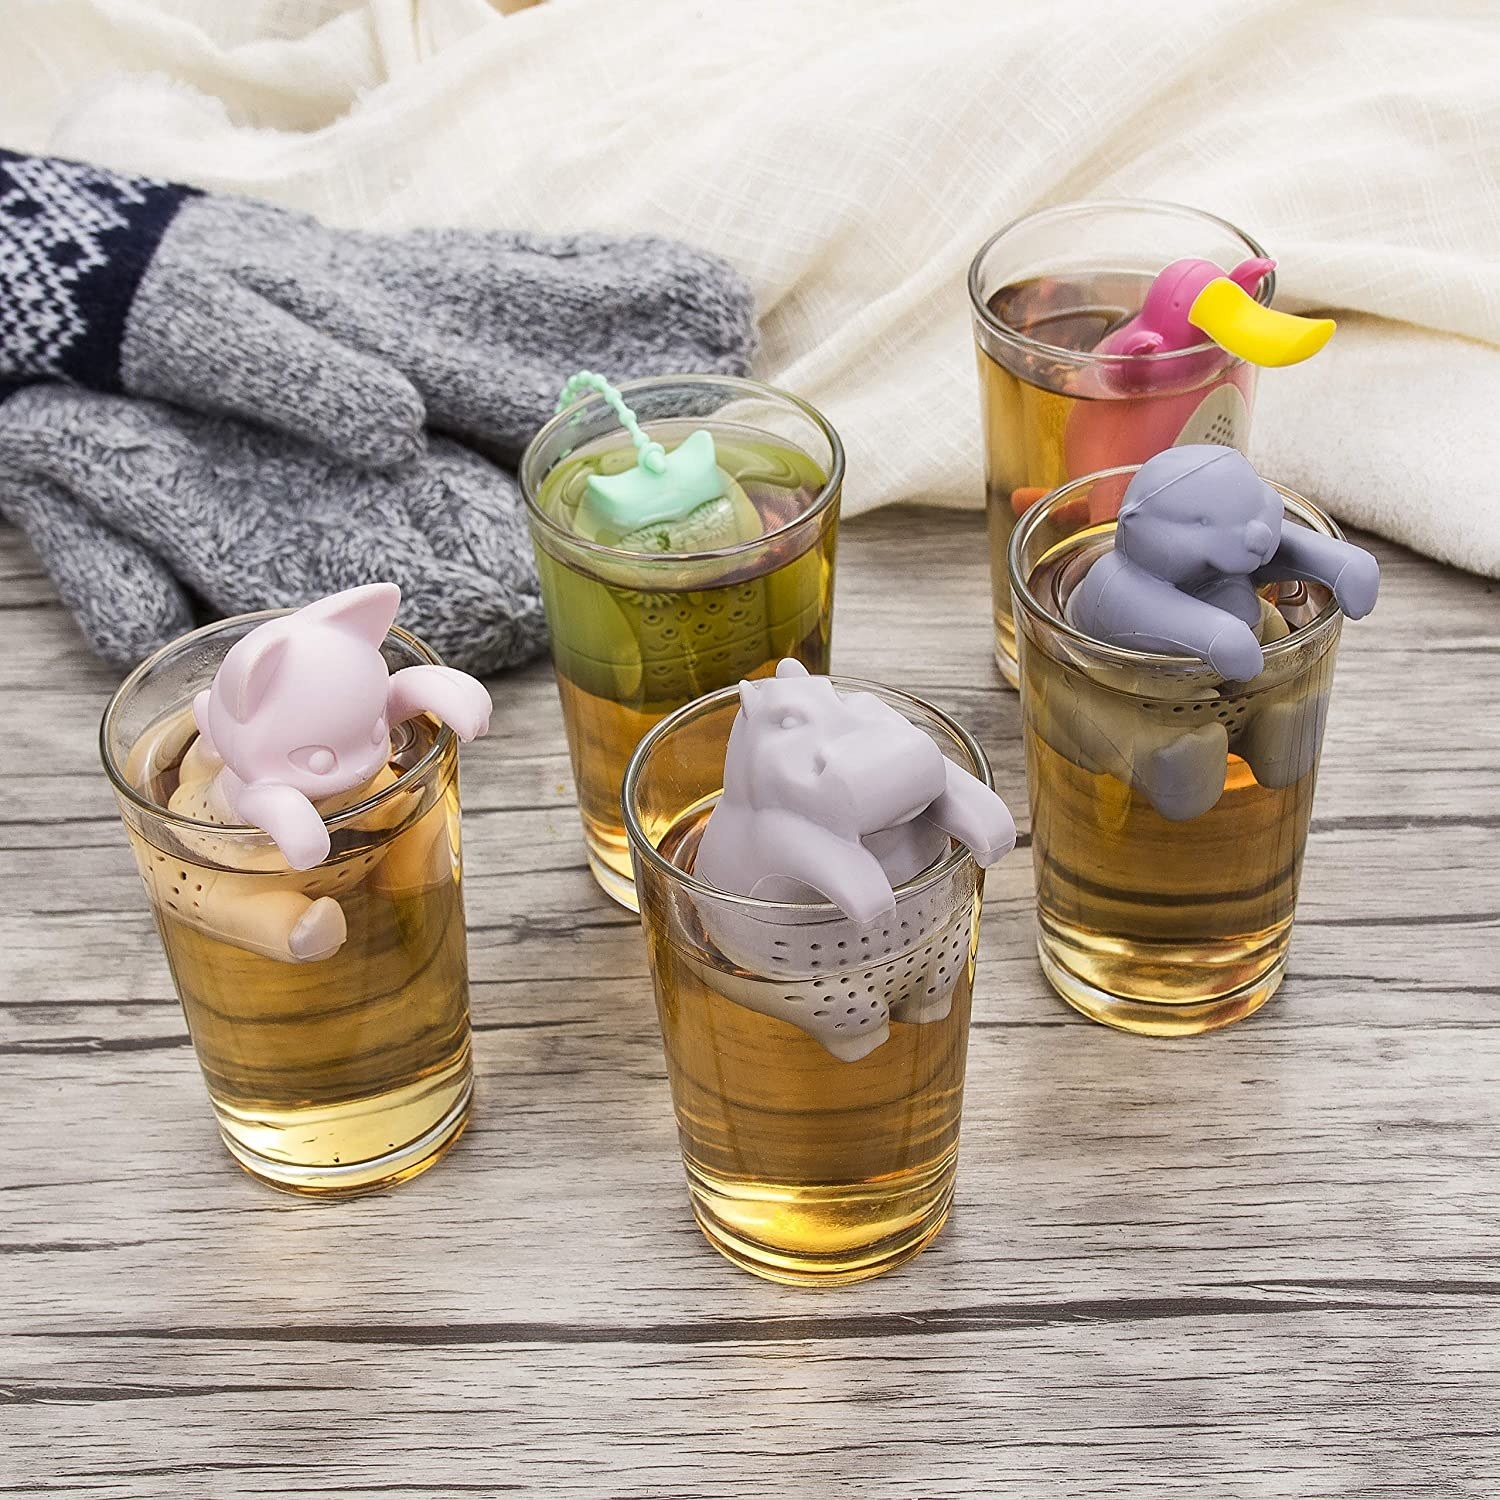 Five infusers shaped like a cat, a hippo, a sloth, an owl, and a platypus in clear tea glasses.